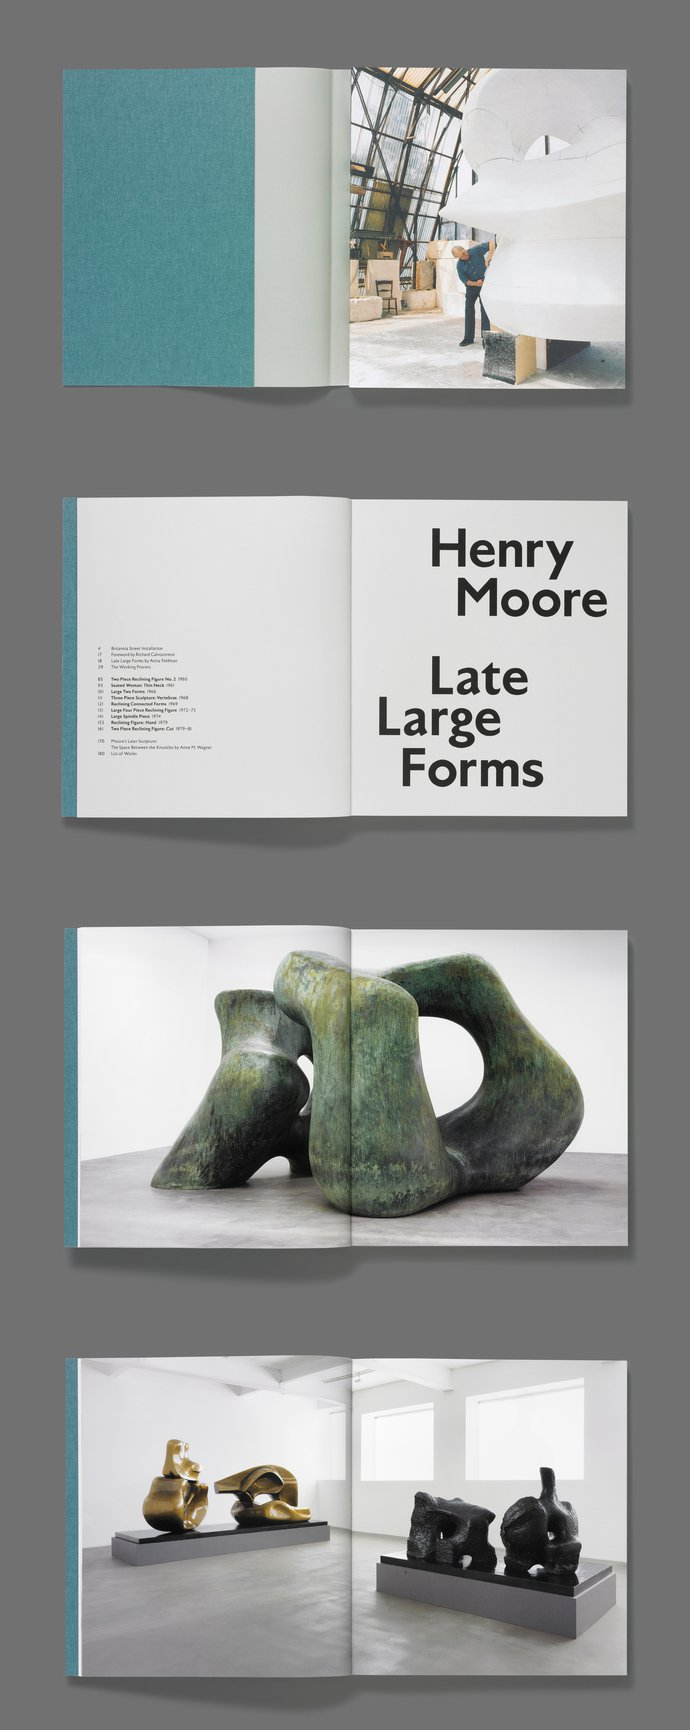 Gagosian – Henry Moore: Late Large Forms, 2012 (Publication), image 3